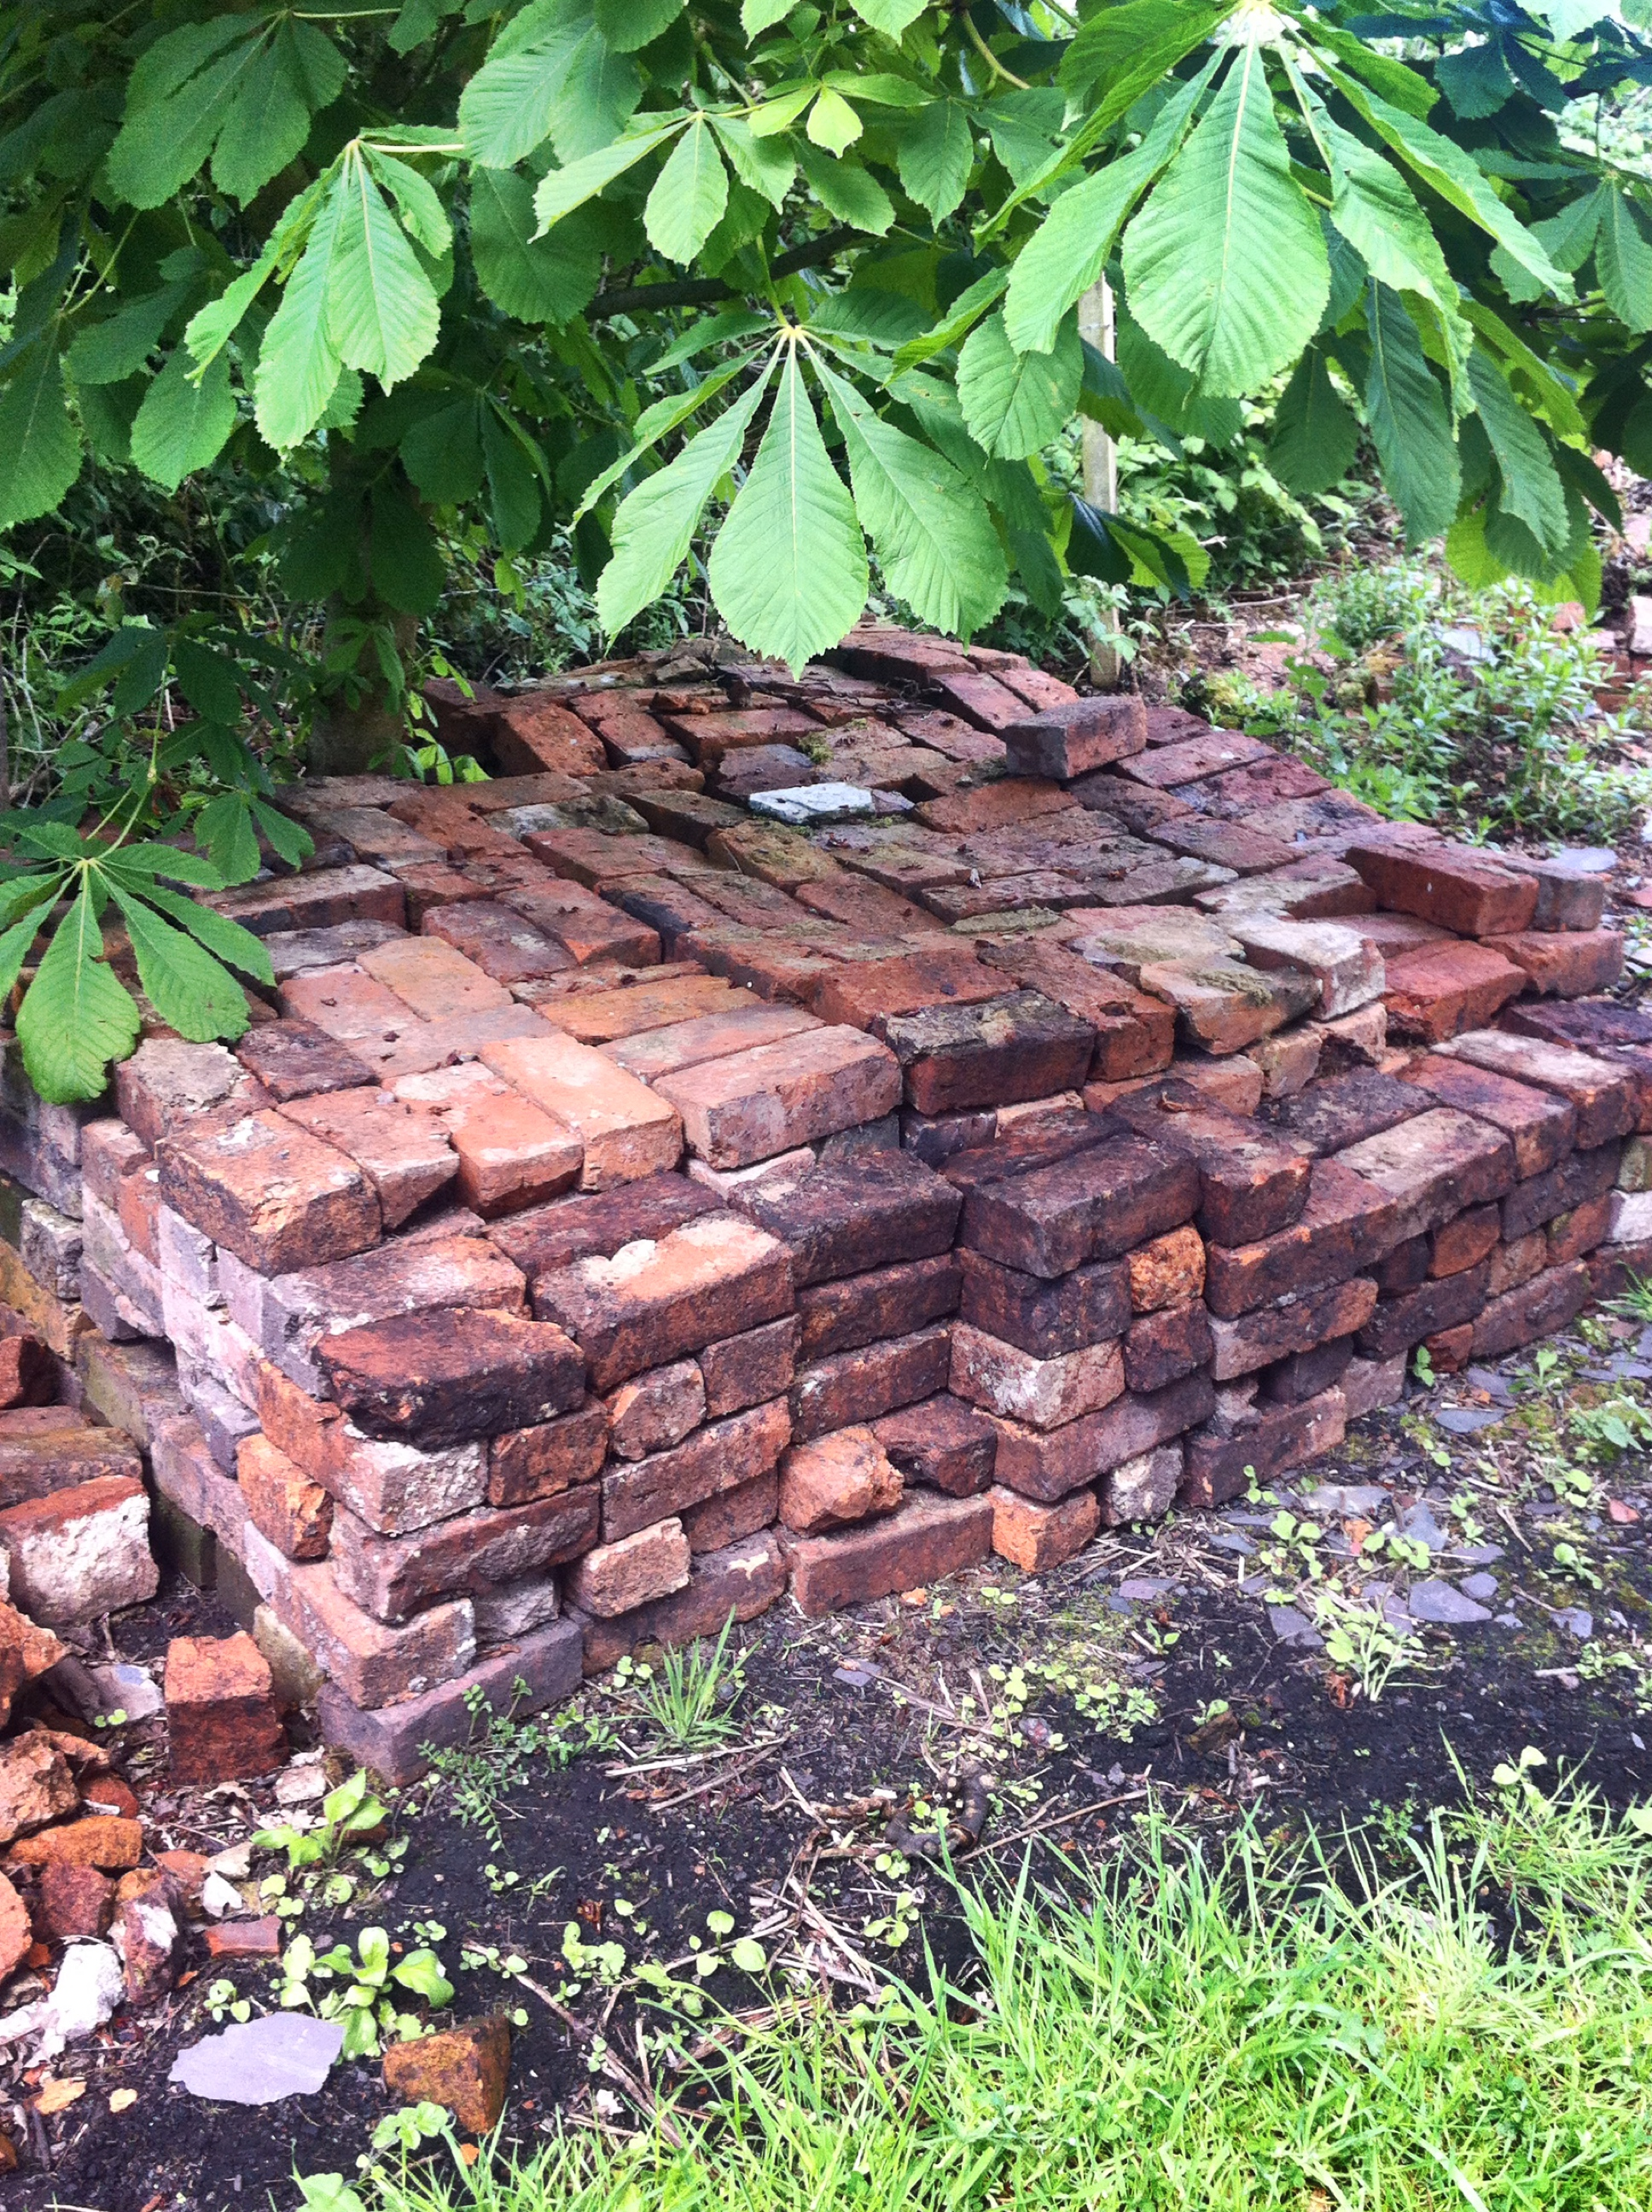 A pile of bricks represented as a memorial by artist Paul Conneally 2017